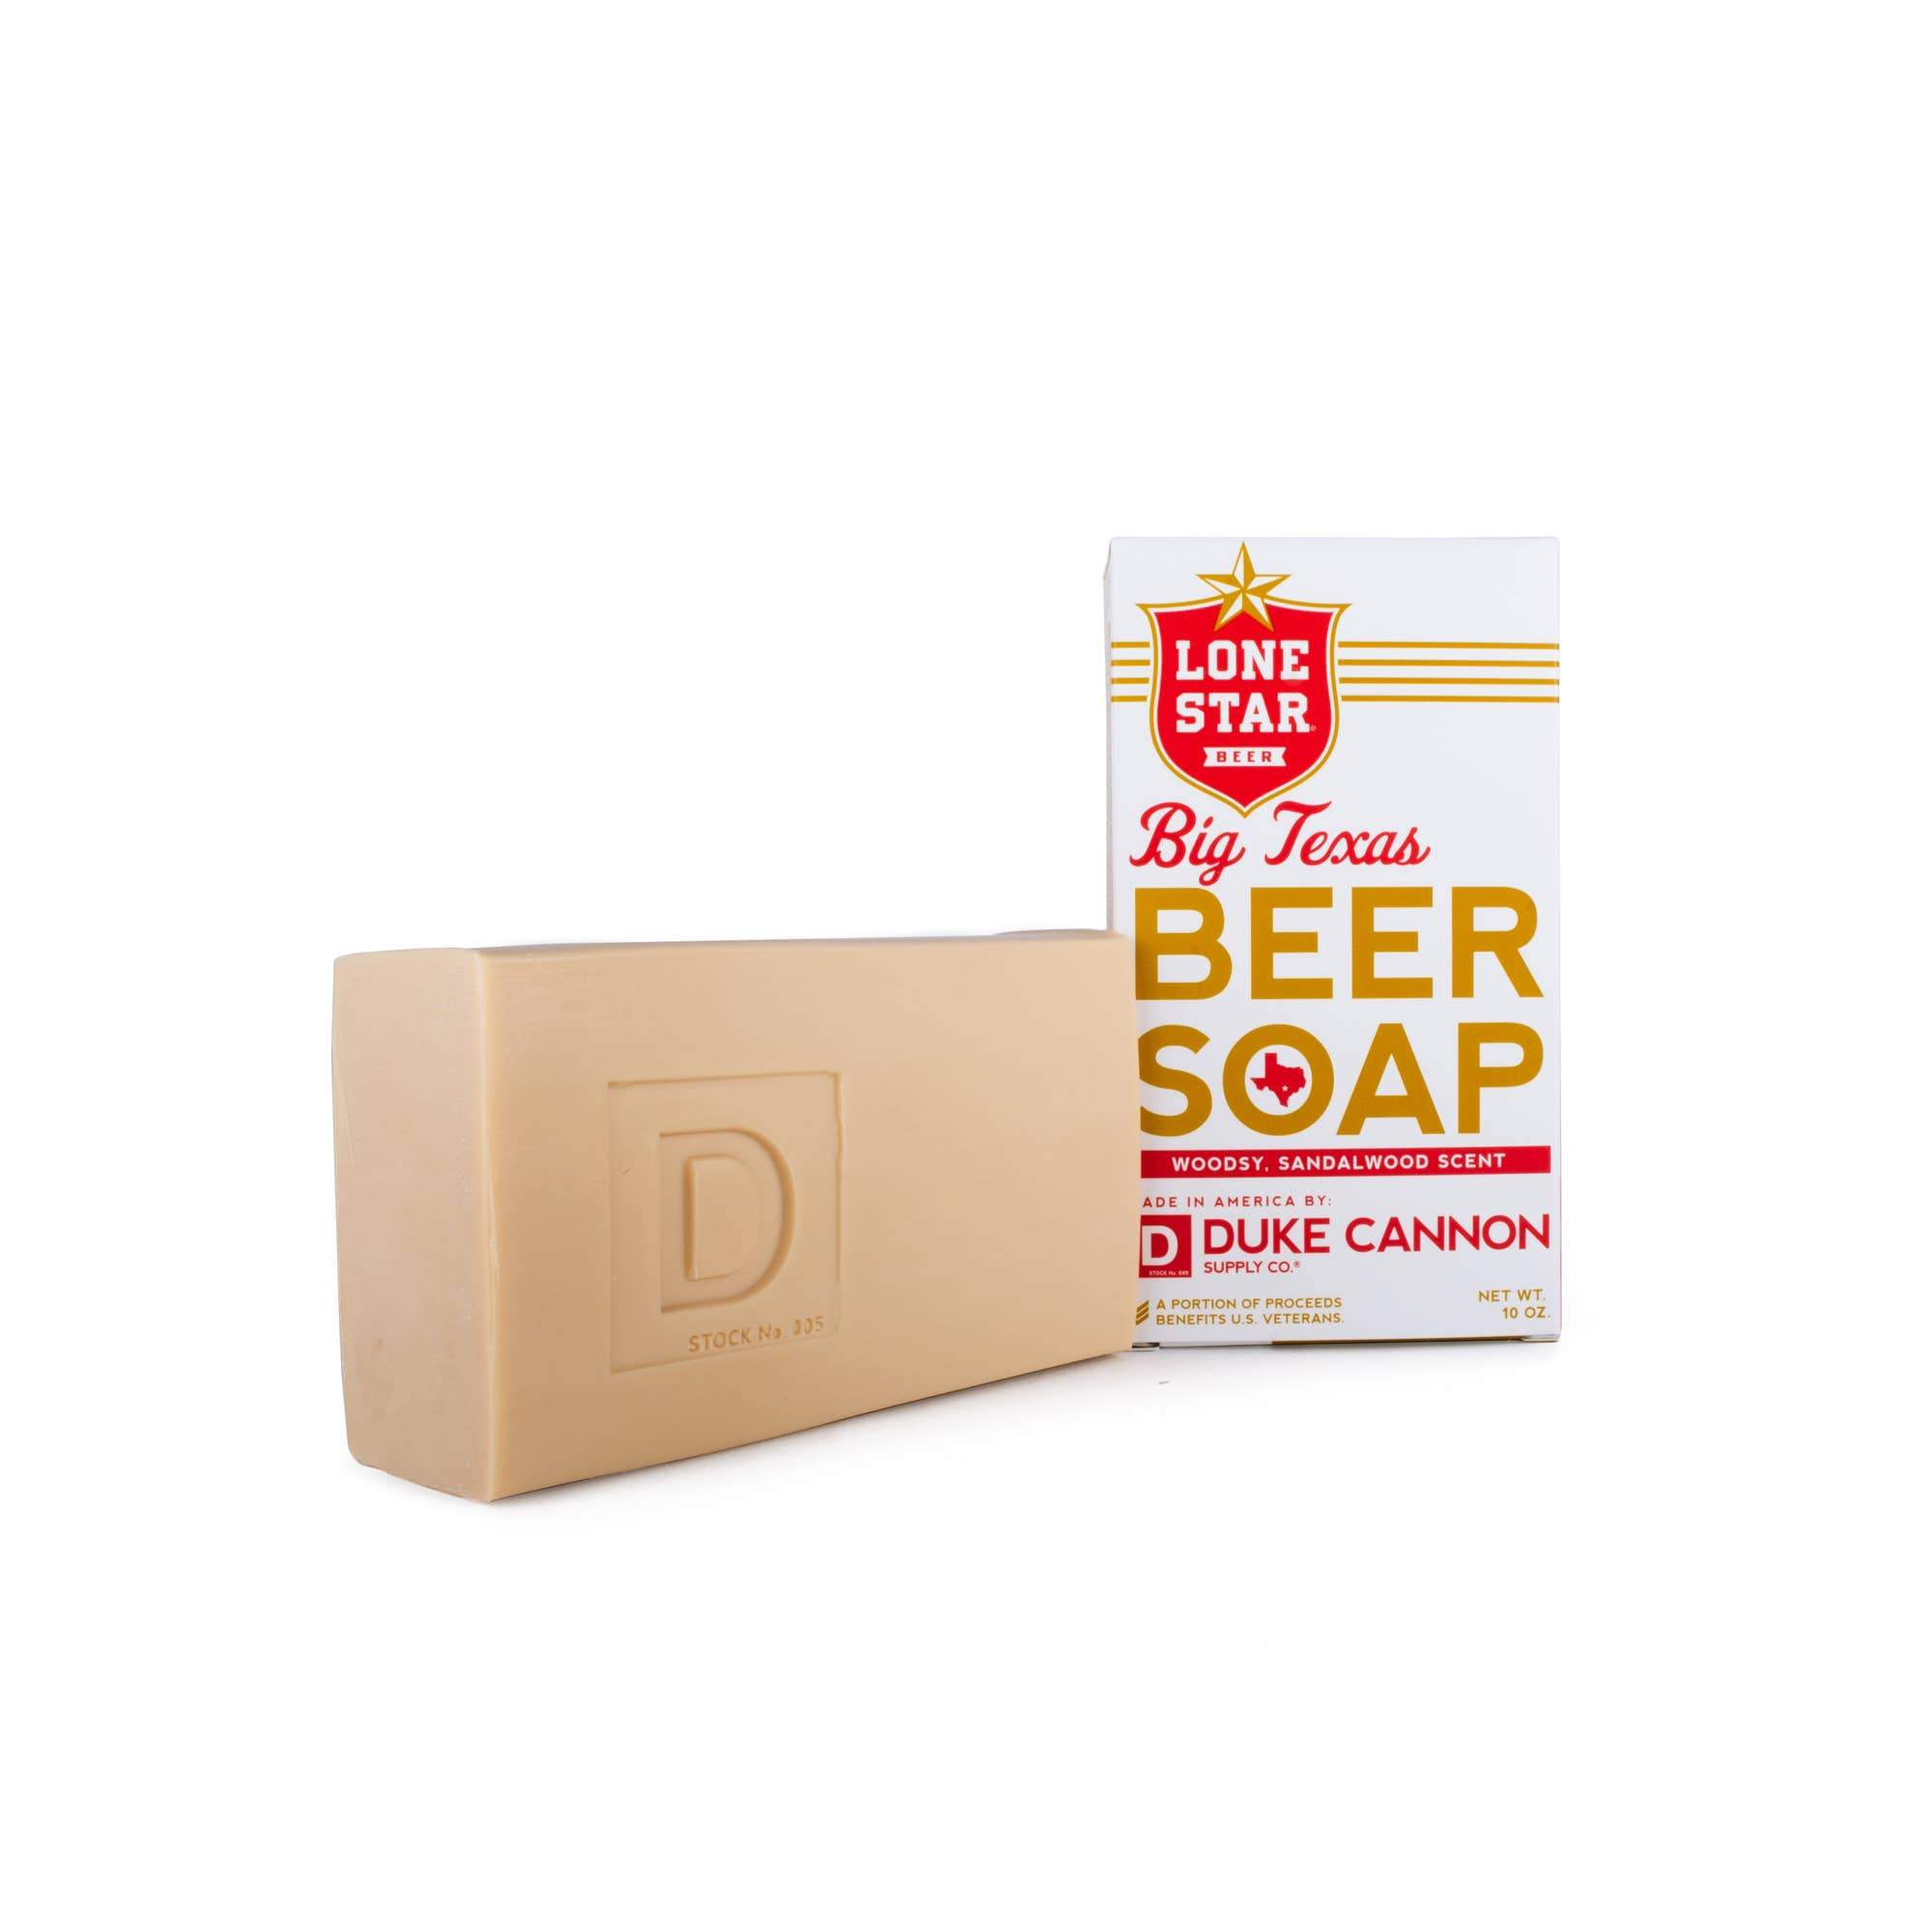 fisher-couture-com-Duke Cannon-Big Texas Beer Soap